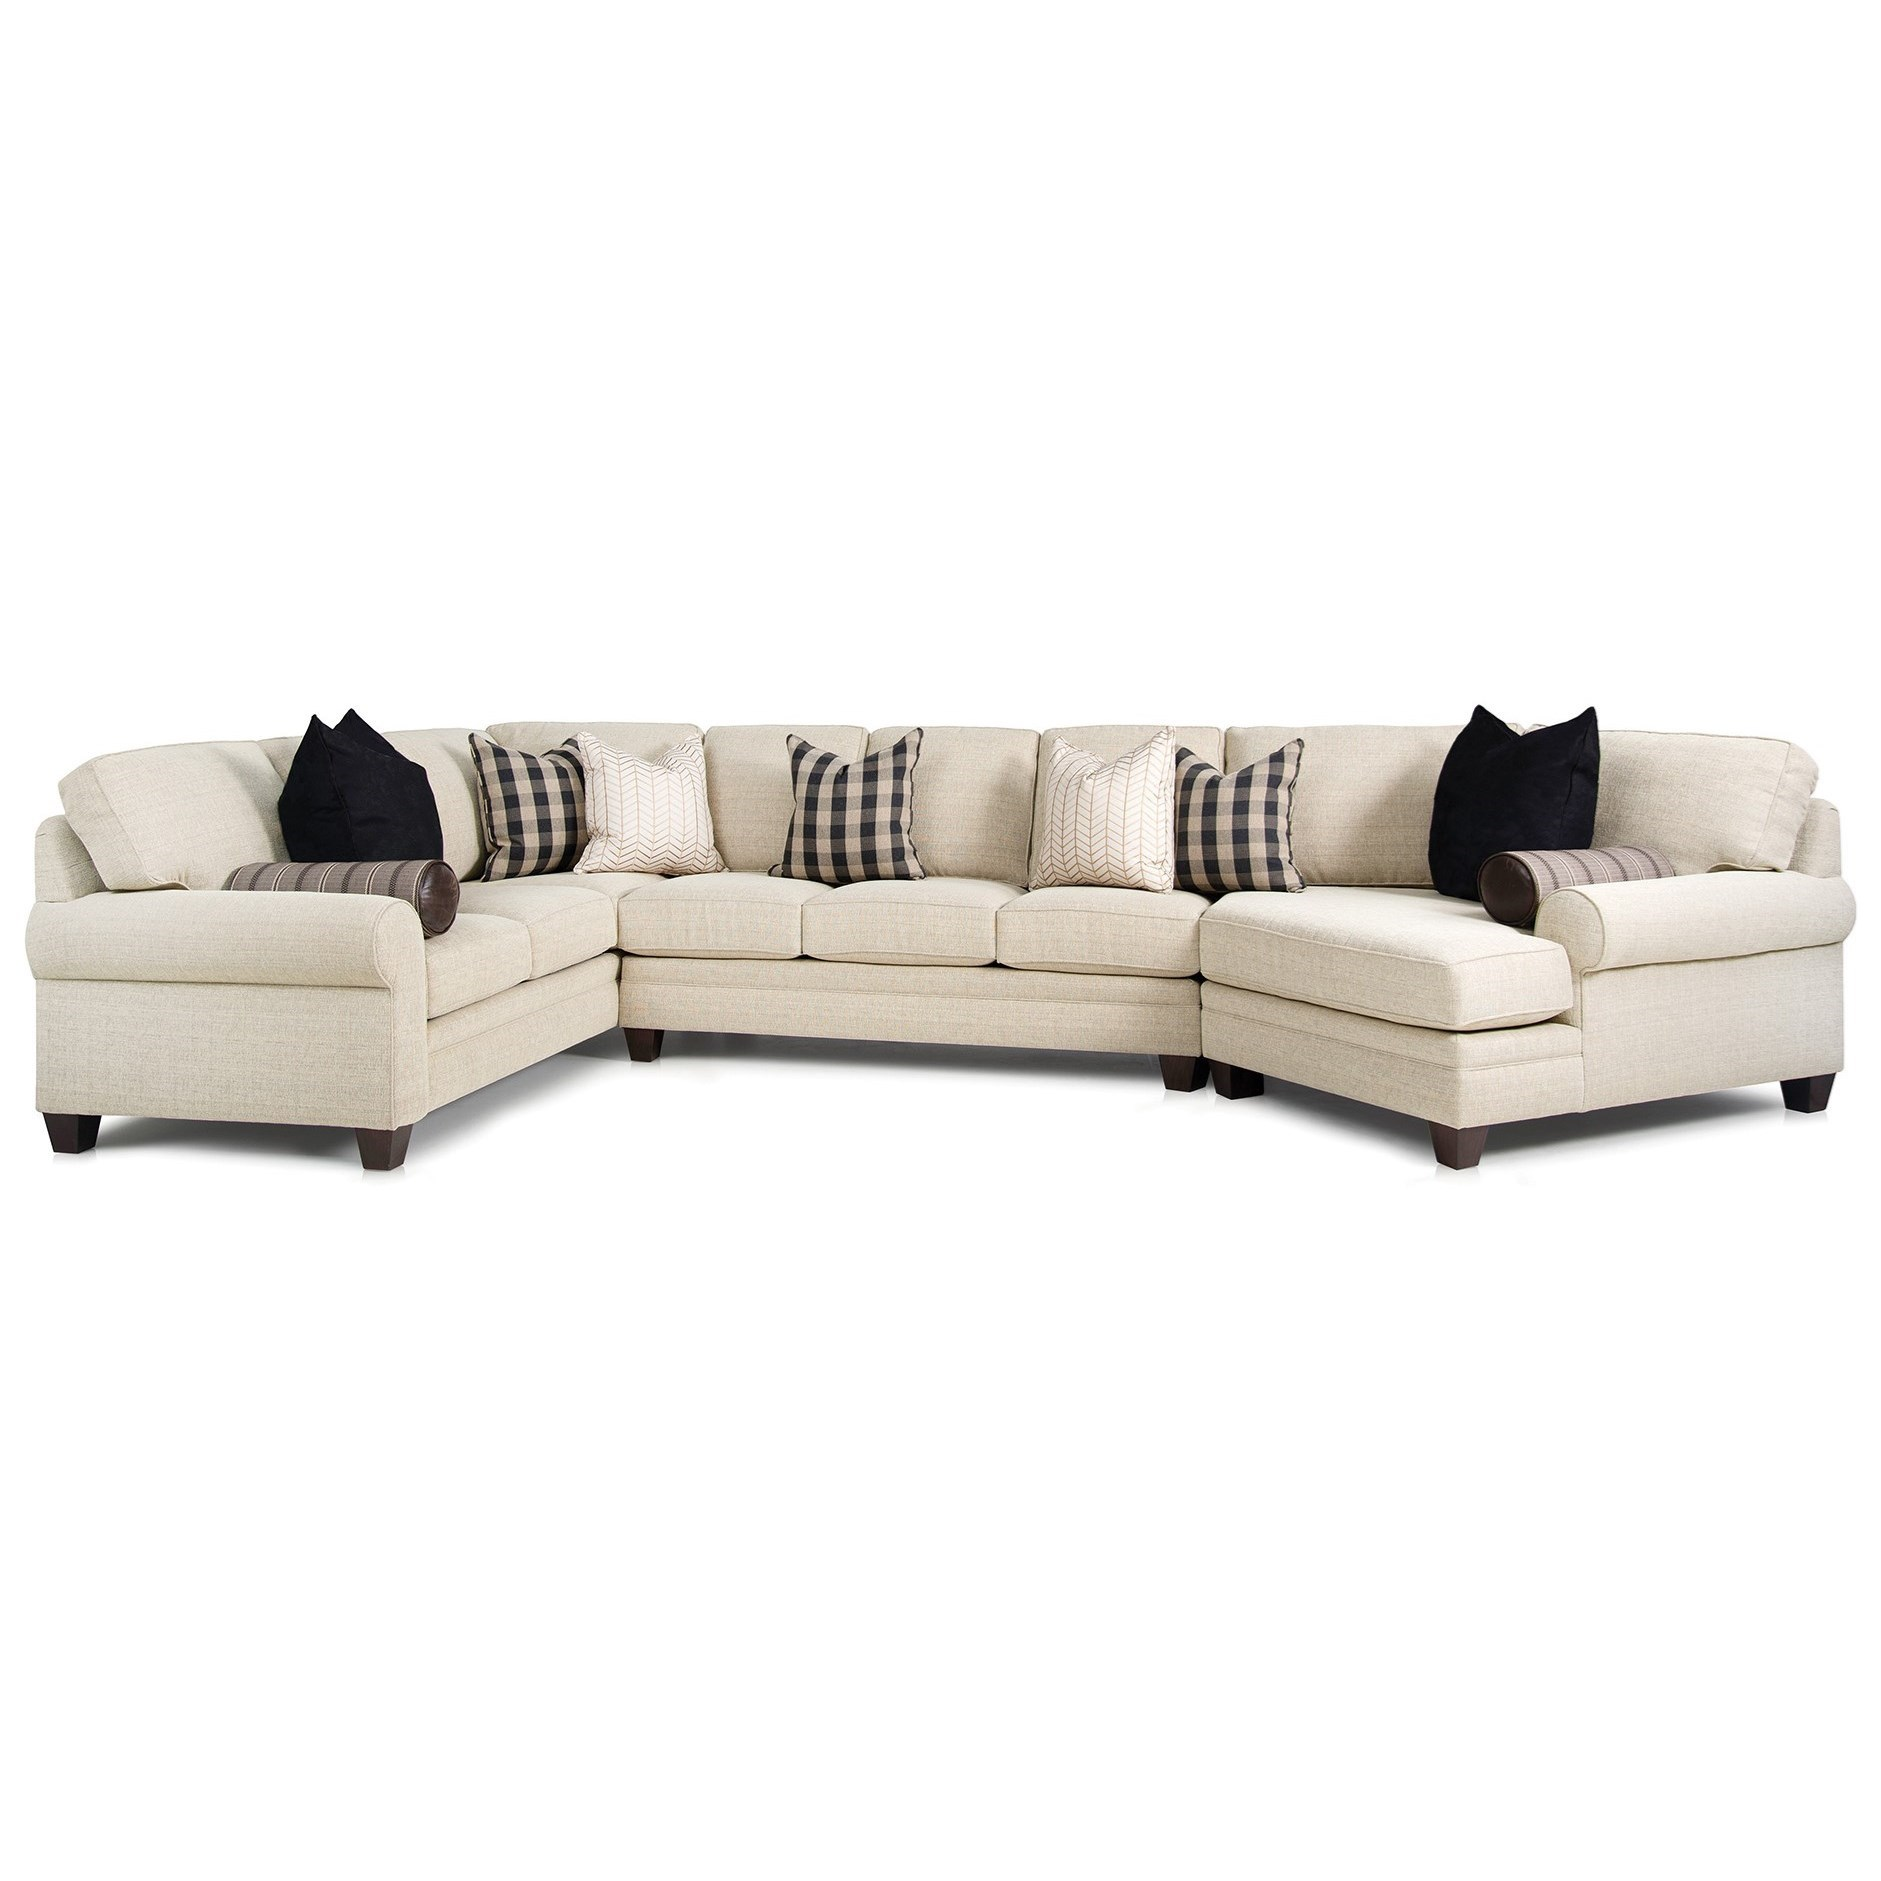 Build Your Own 5000 Series Customizable Sectional by Smith Brothers at Mueller Furniture